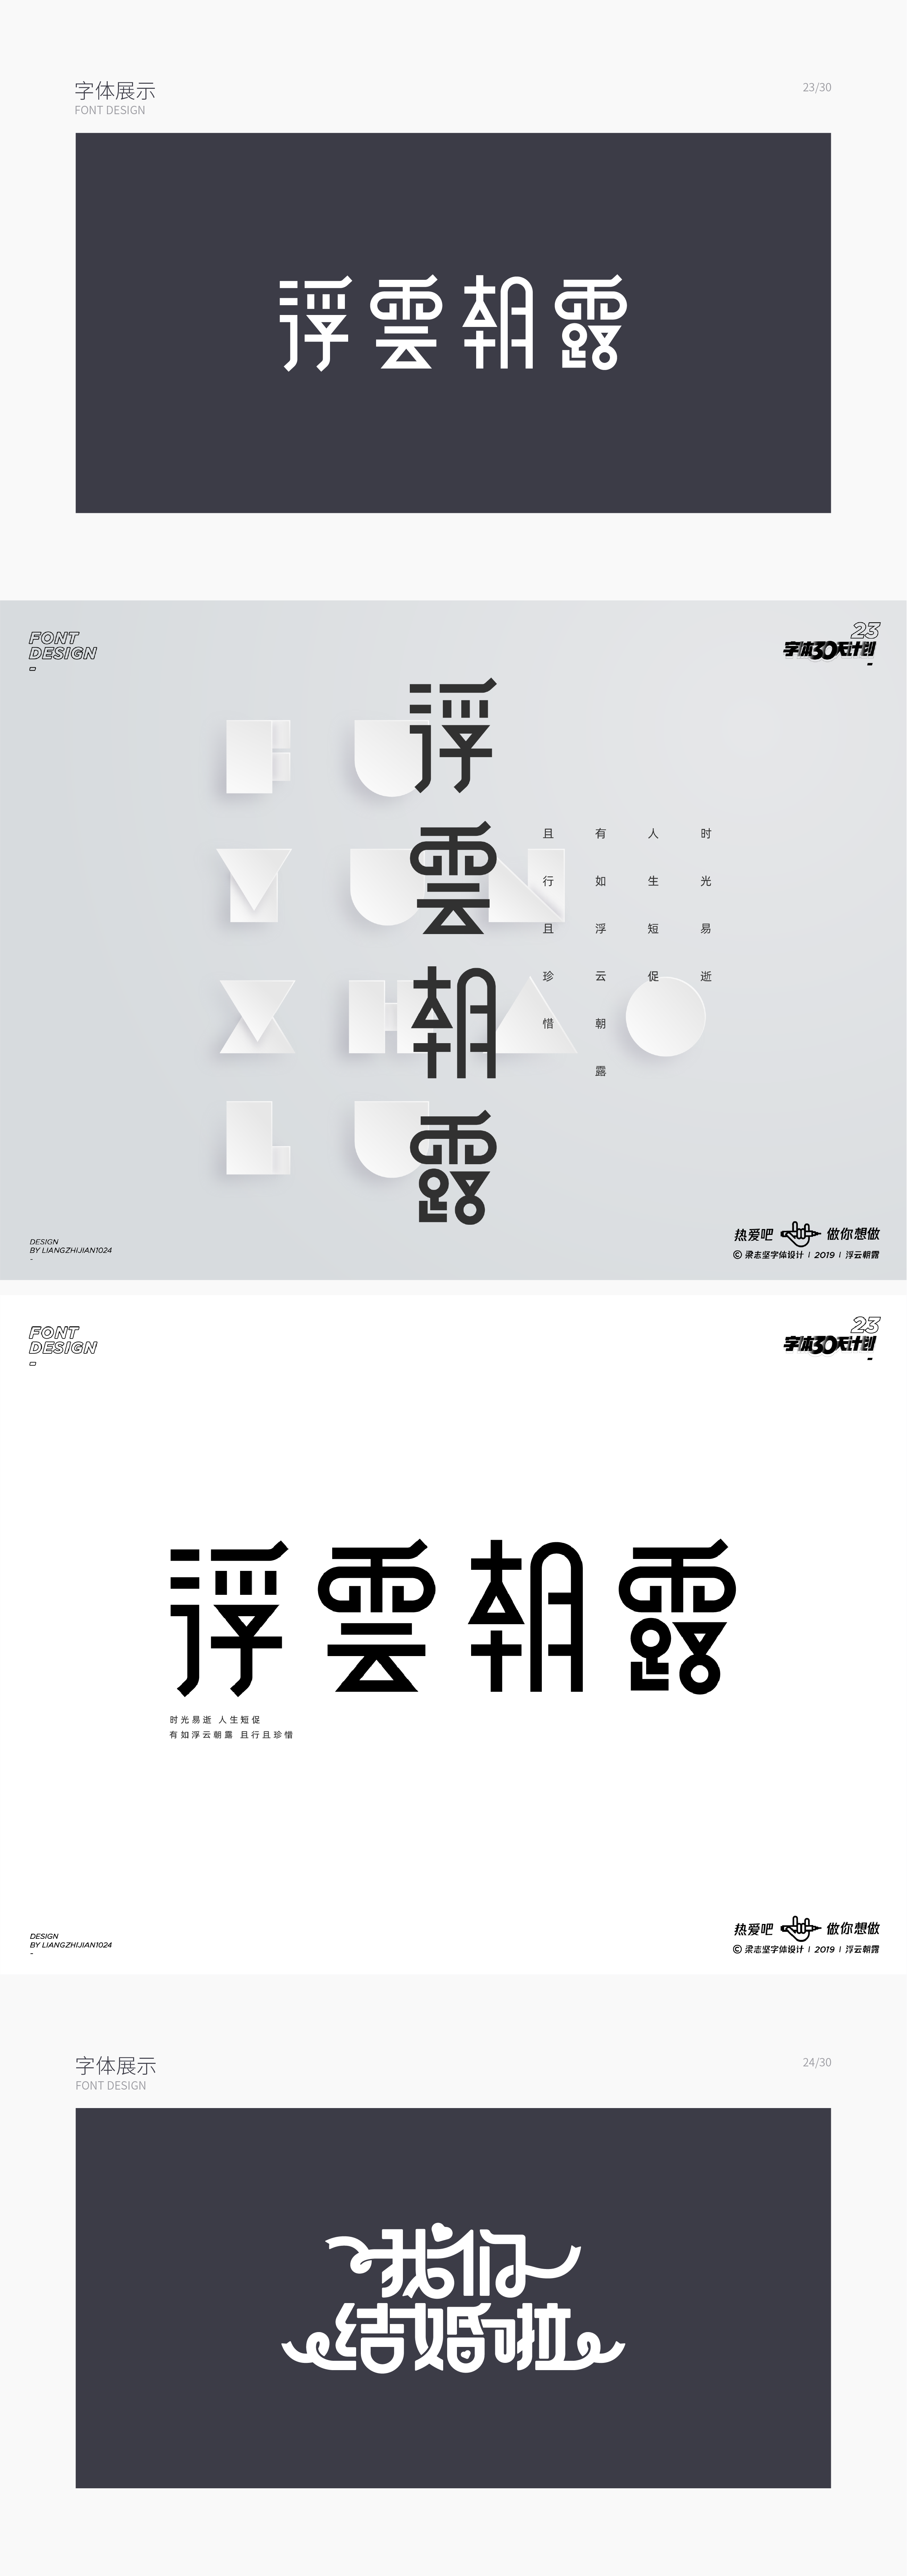 6P Collection of the latest Chinese font design schemes in 2021 #.542